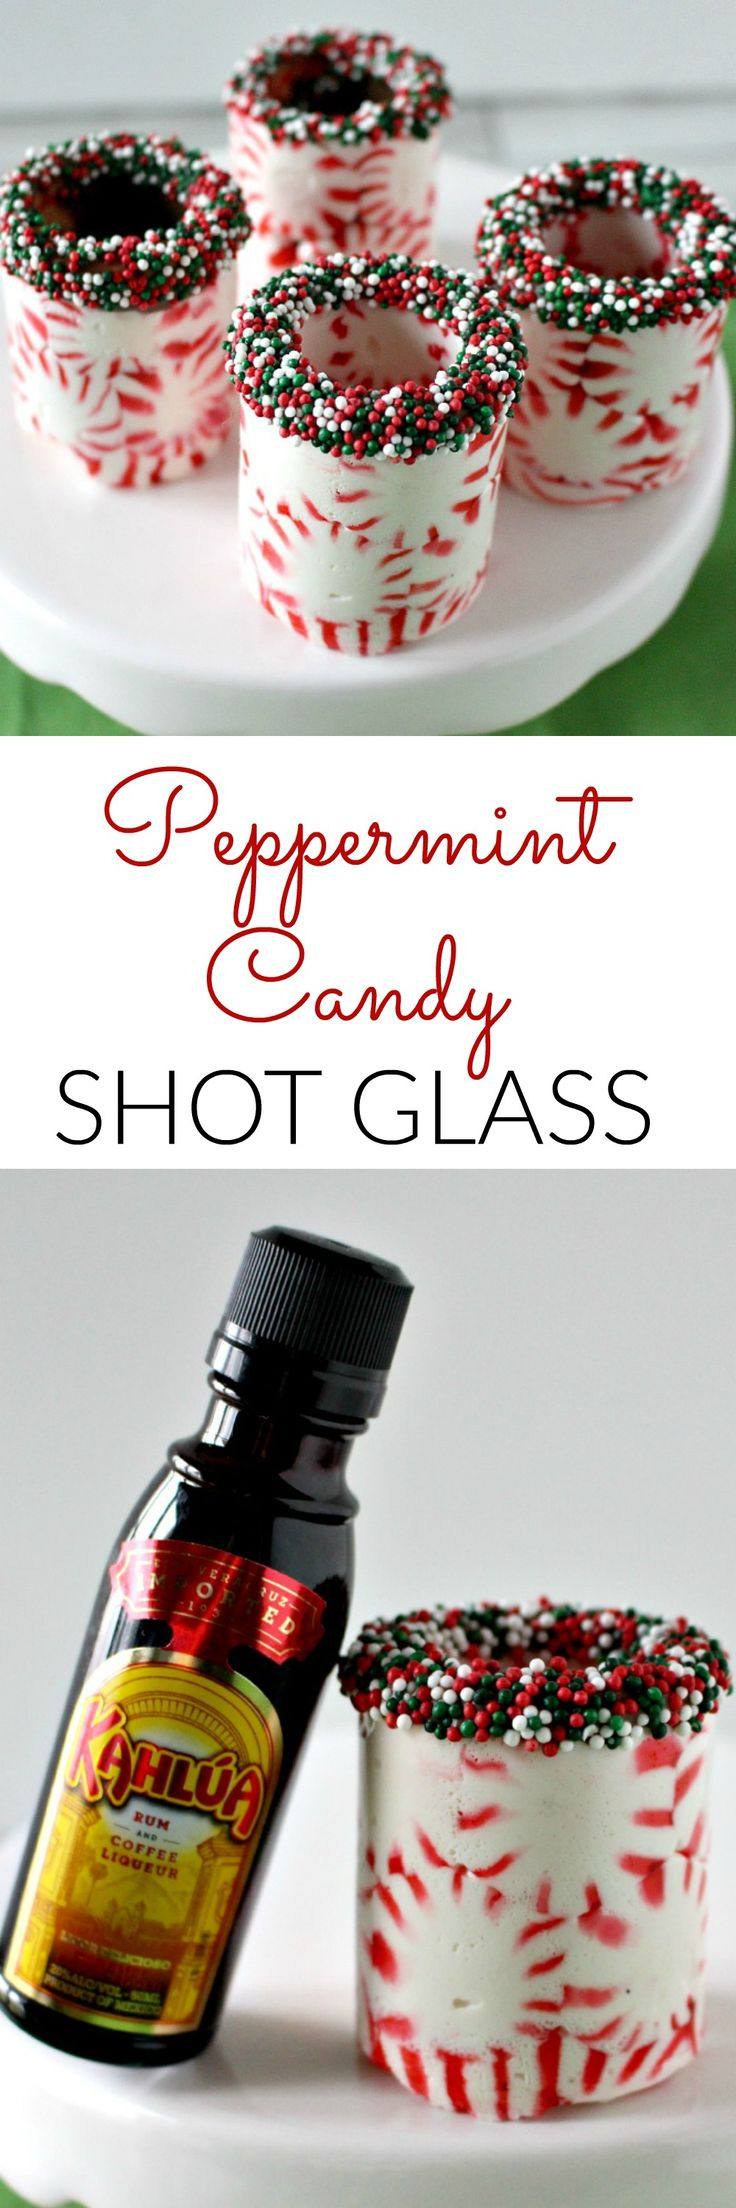 Peppermint Candy Shot Glasses - The perfect DIY gift. Great as a shot glass or an edible cup for a cute mini dessert!